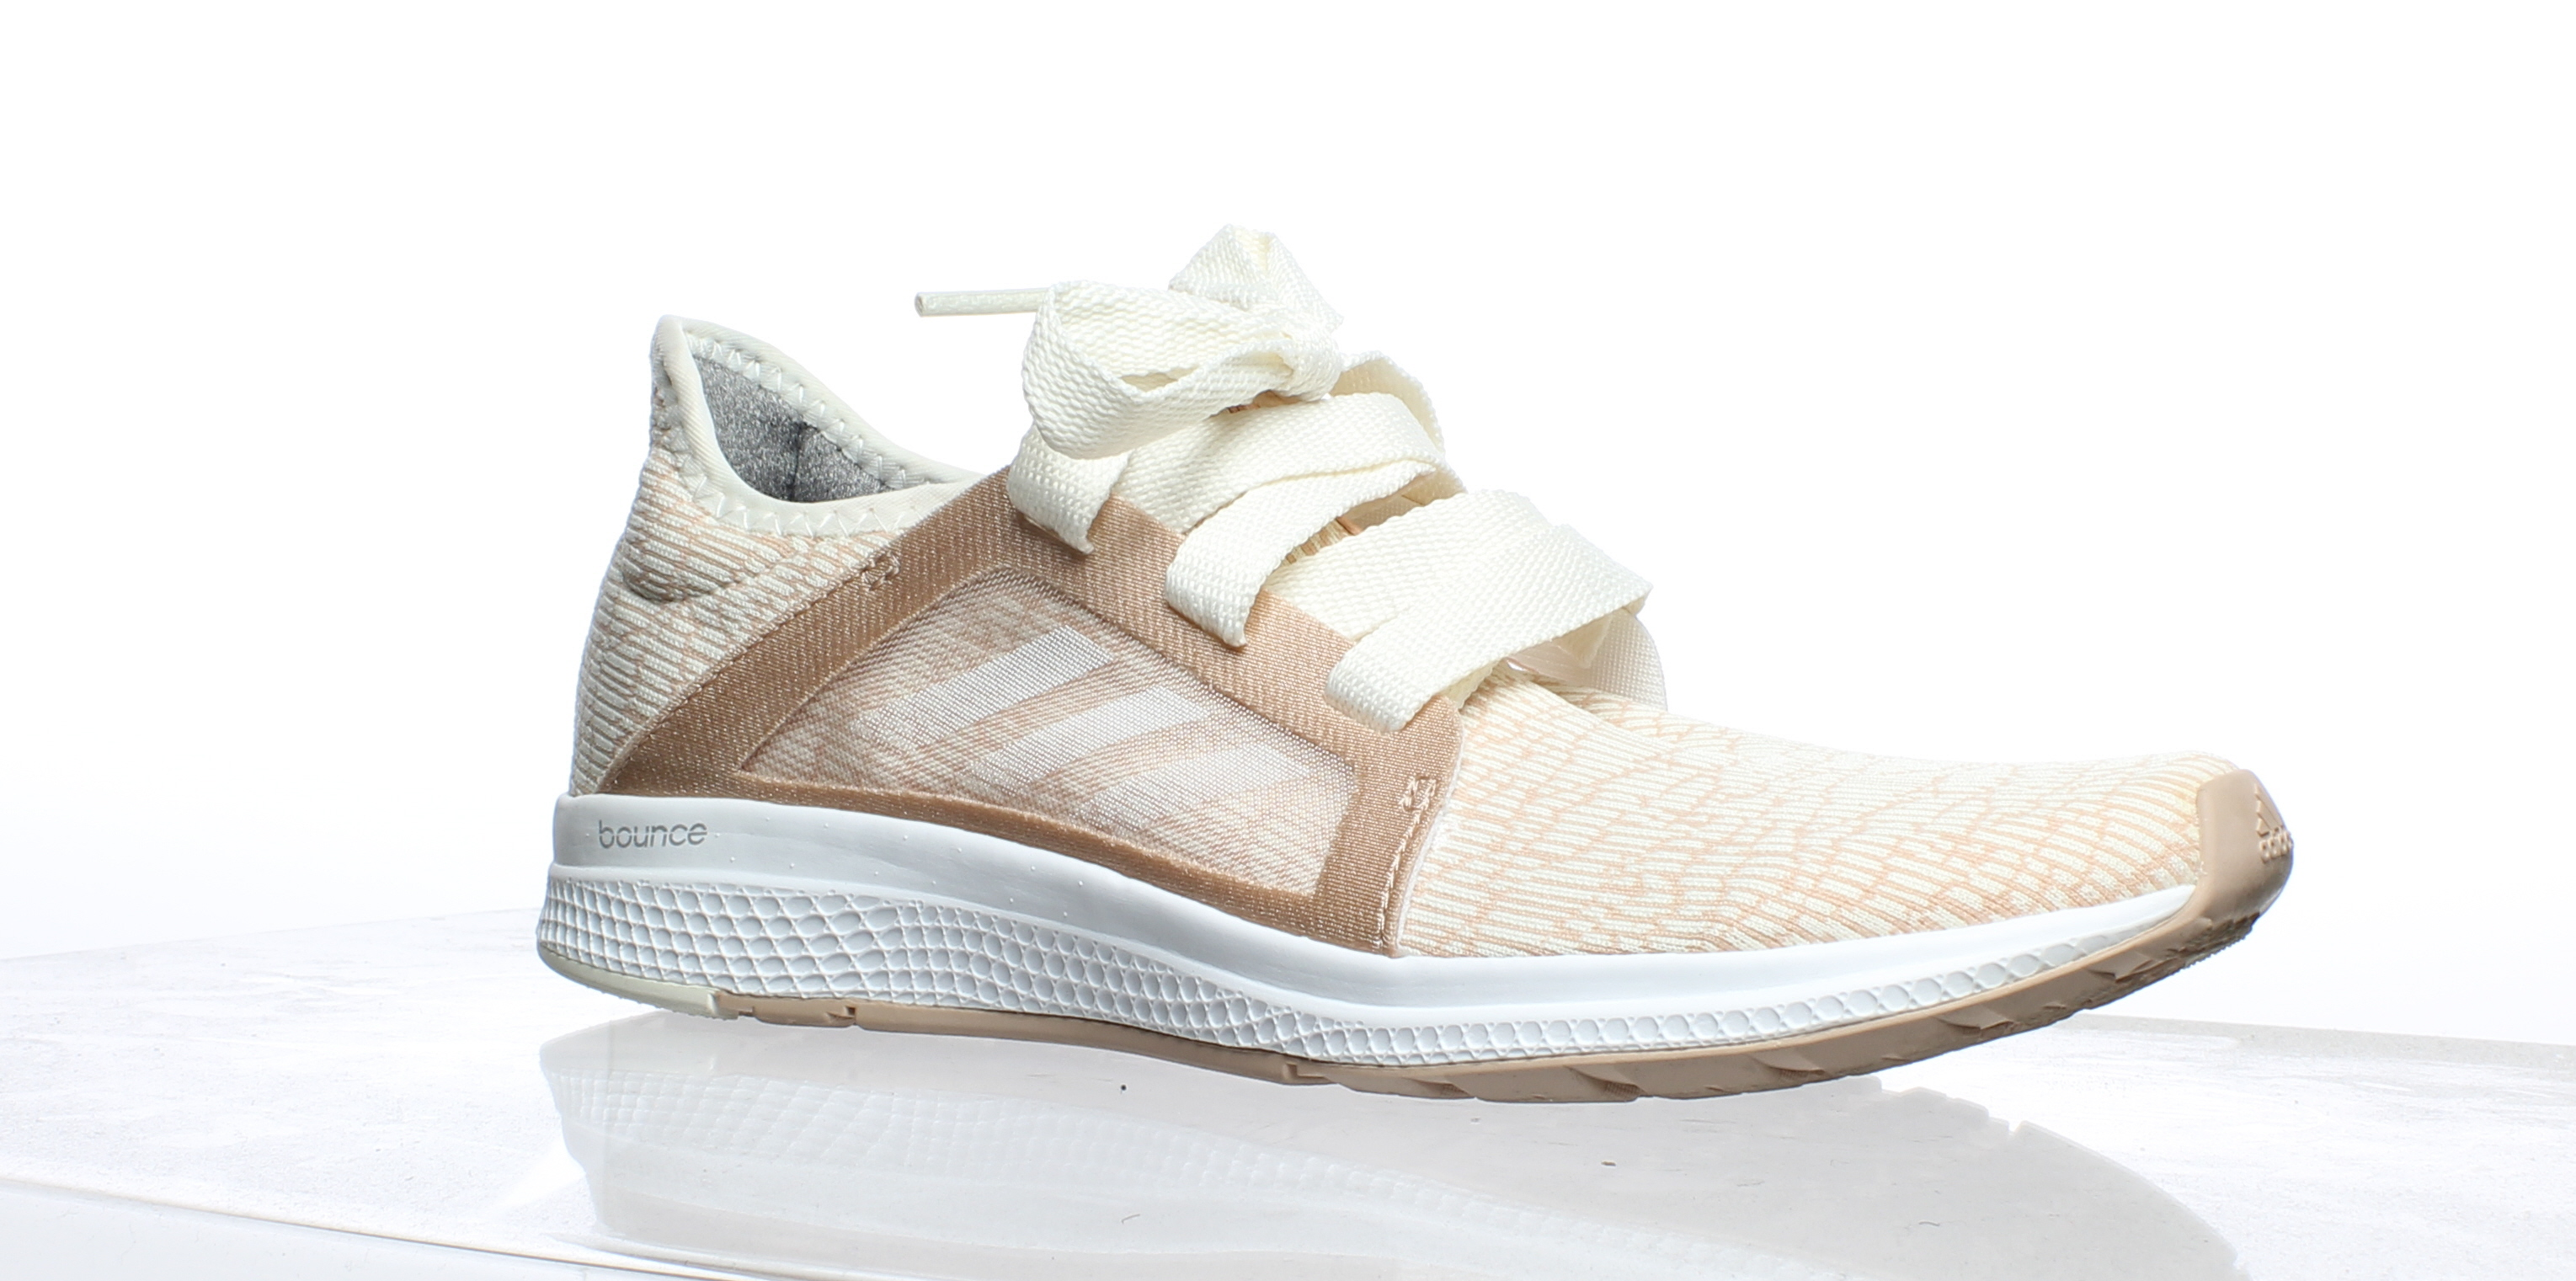 90da7eca4 Details about Adidas Womens Edge Lux Rose Gold Running Shoes Size 8 (255005)